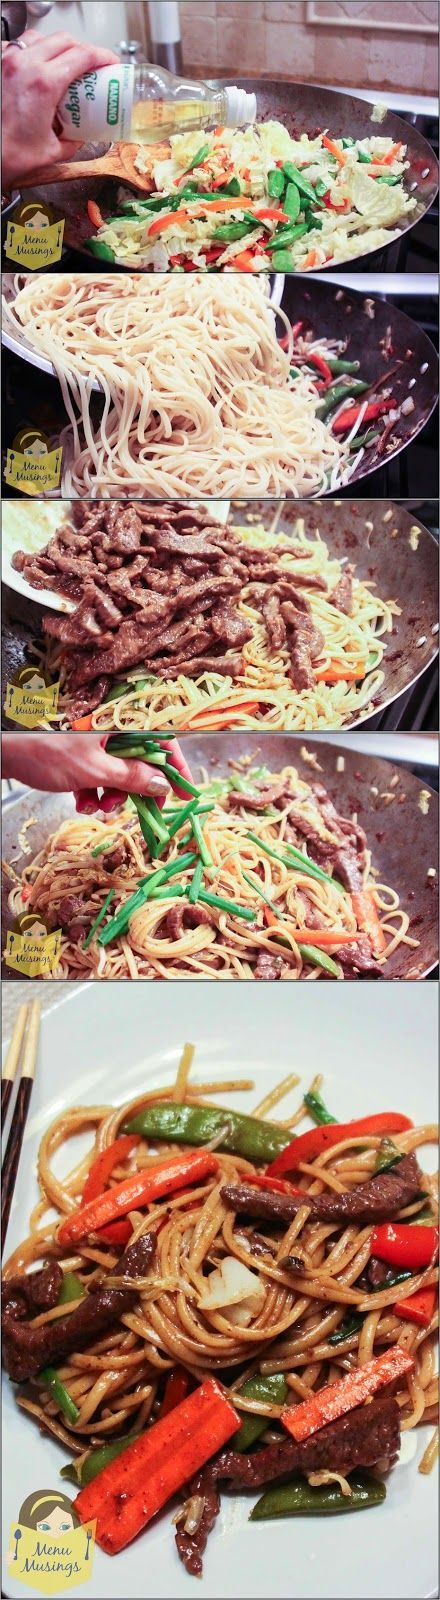 Easy Beef Lo Mein - this quick and easy take-out favorite can be on your family table after work. Step-by-step photos. ♥: